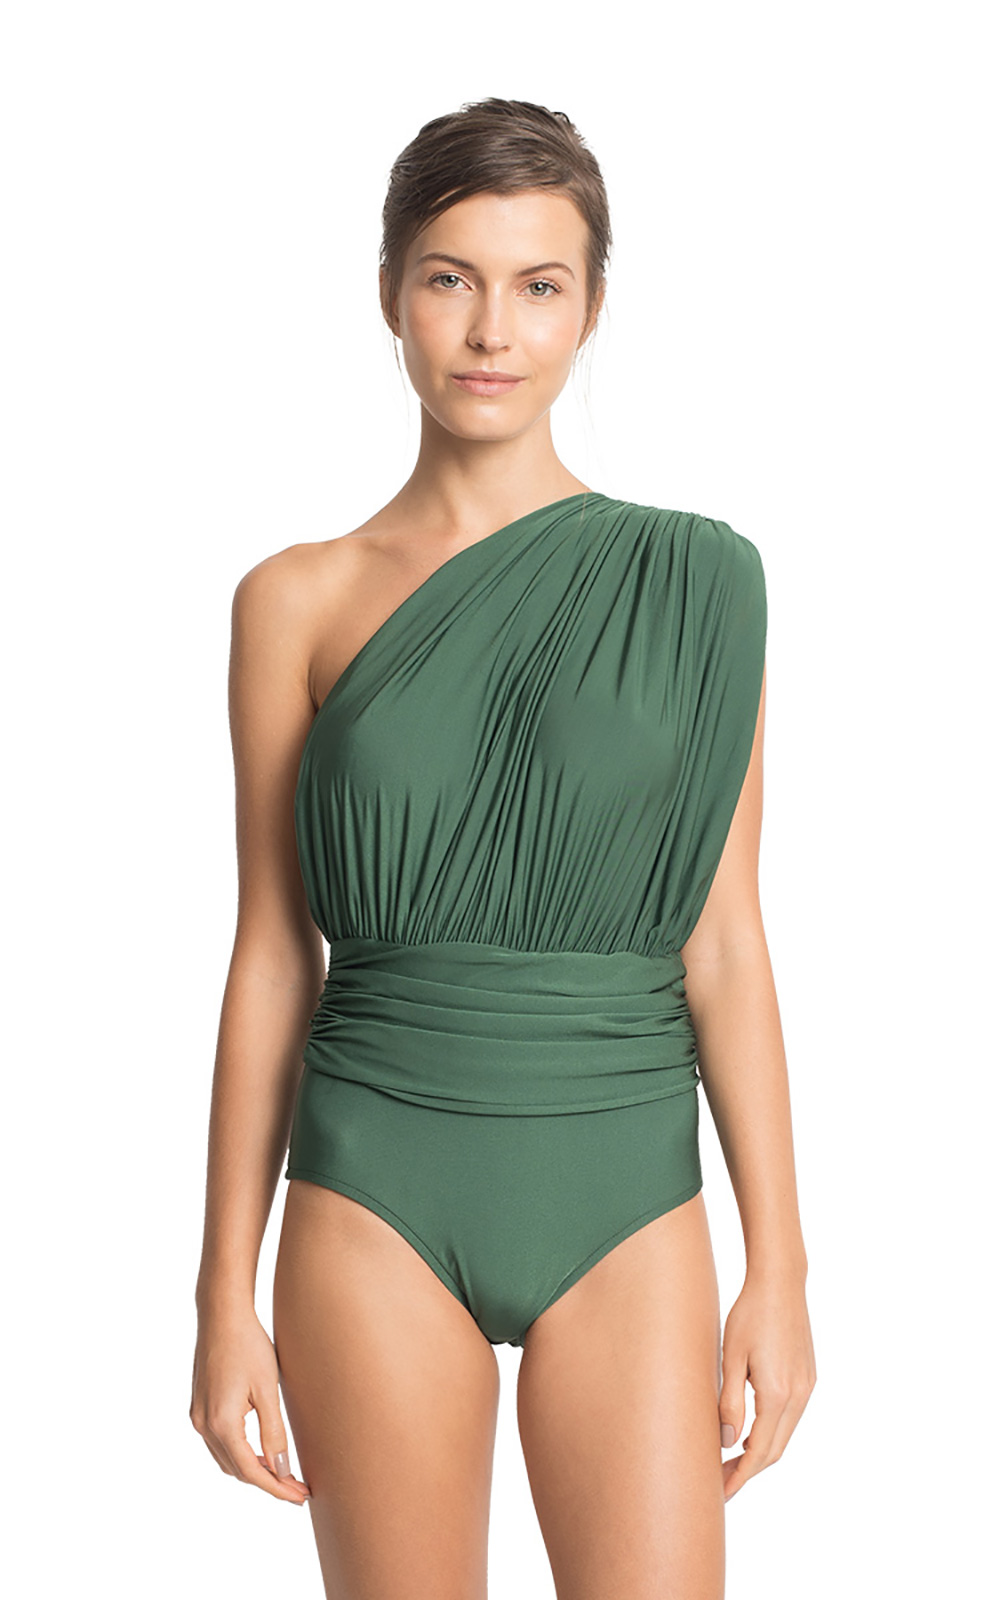 0fa078e86c3 Green Ruched Asymmetrical One-piece Swimsuit - One Shoulder Draped ...